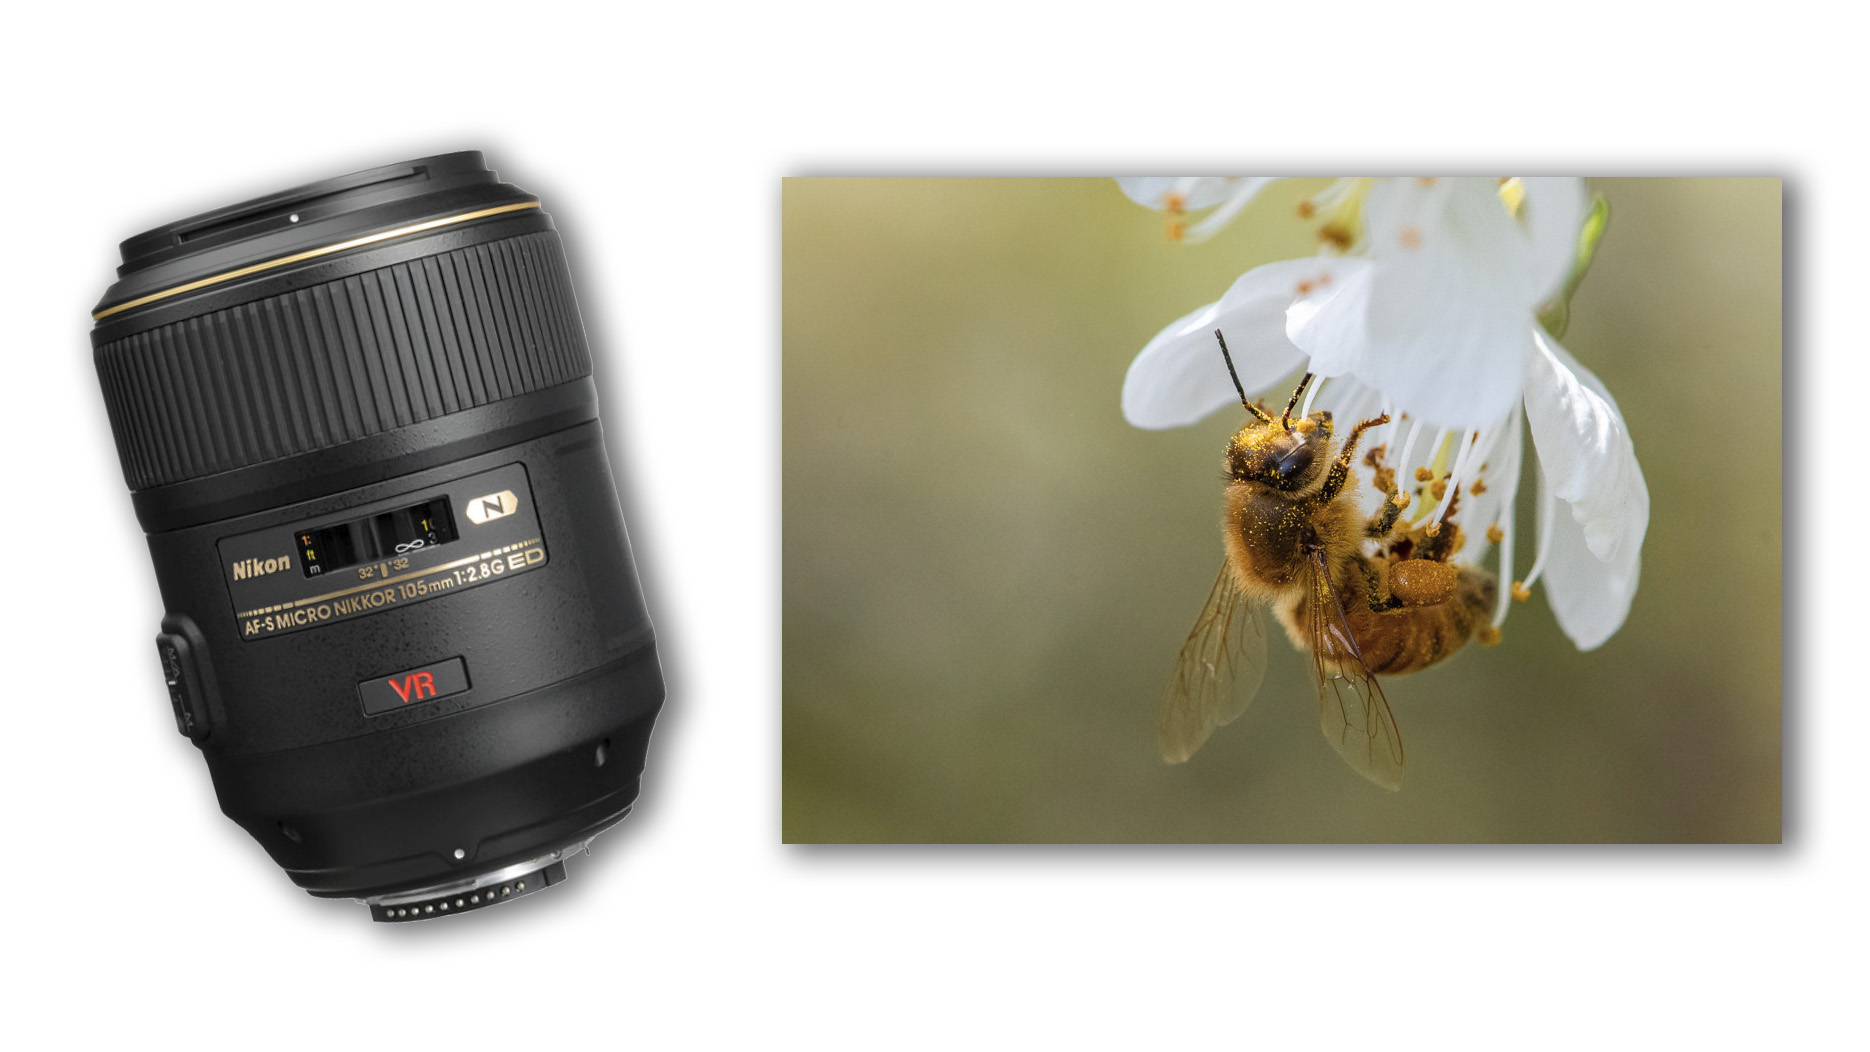 Macro photography with the Nikon VR 105mm f/2.8 and D850